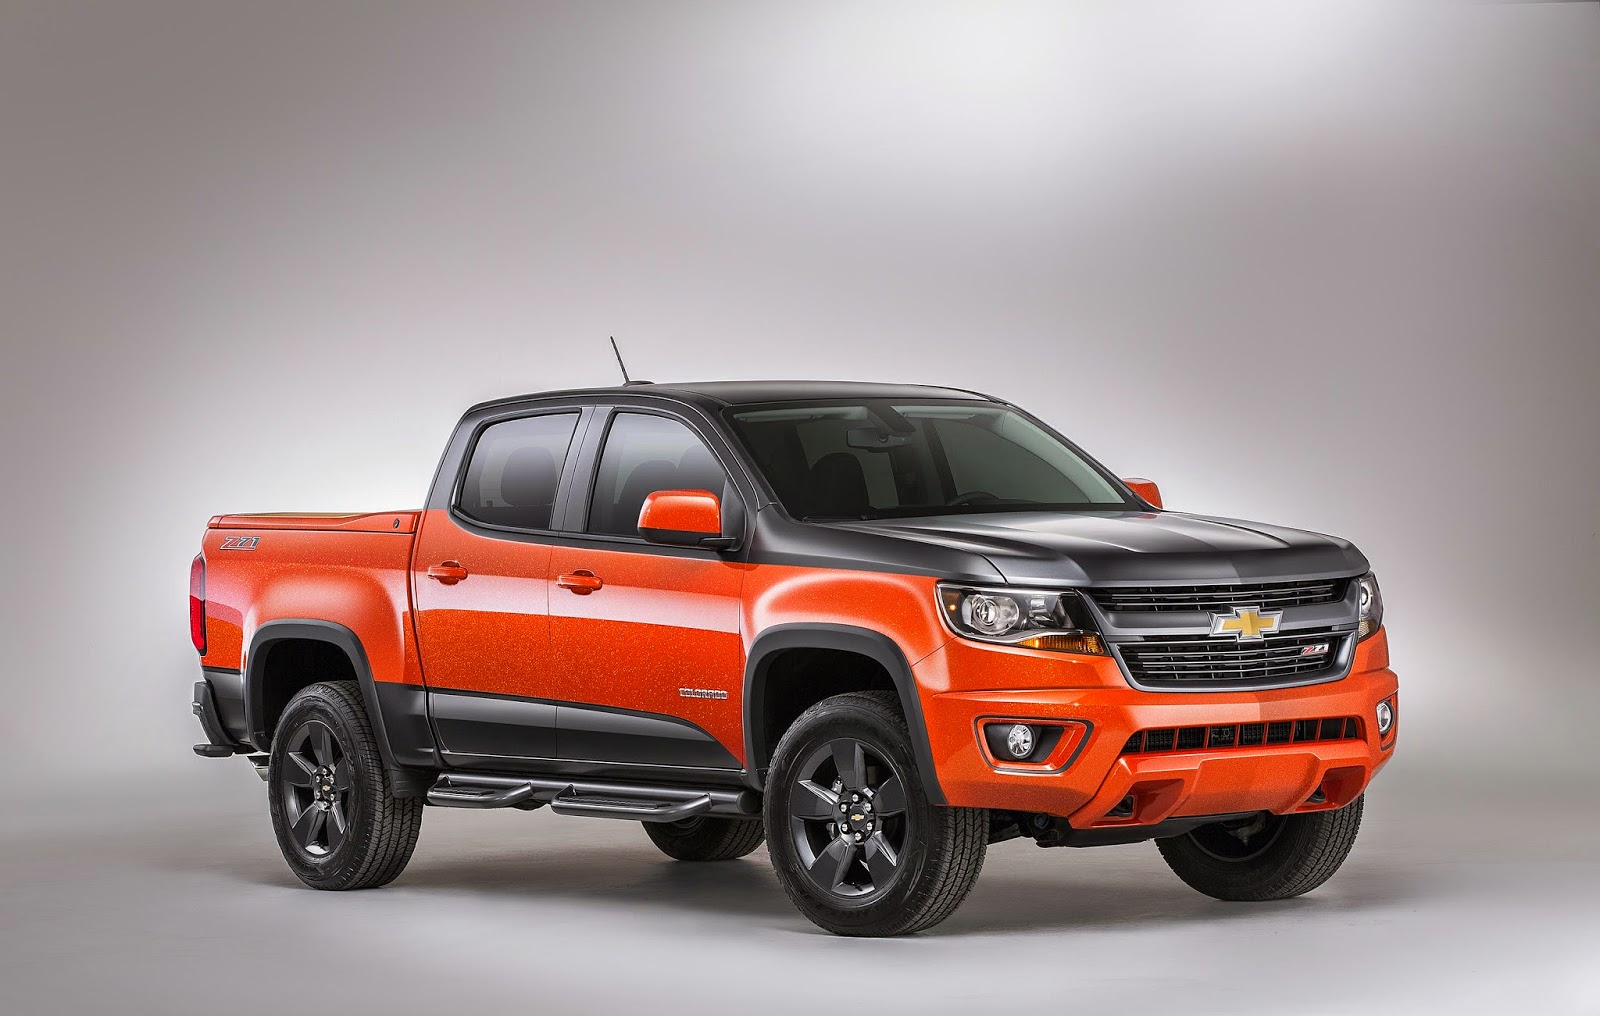 rack it truck racks new 2015 chevy colorado designed for active lifestyles. Black Bedroom Furniture Sets. Home Design Ideas